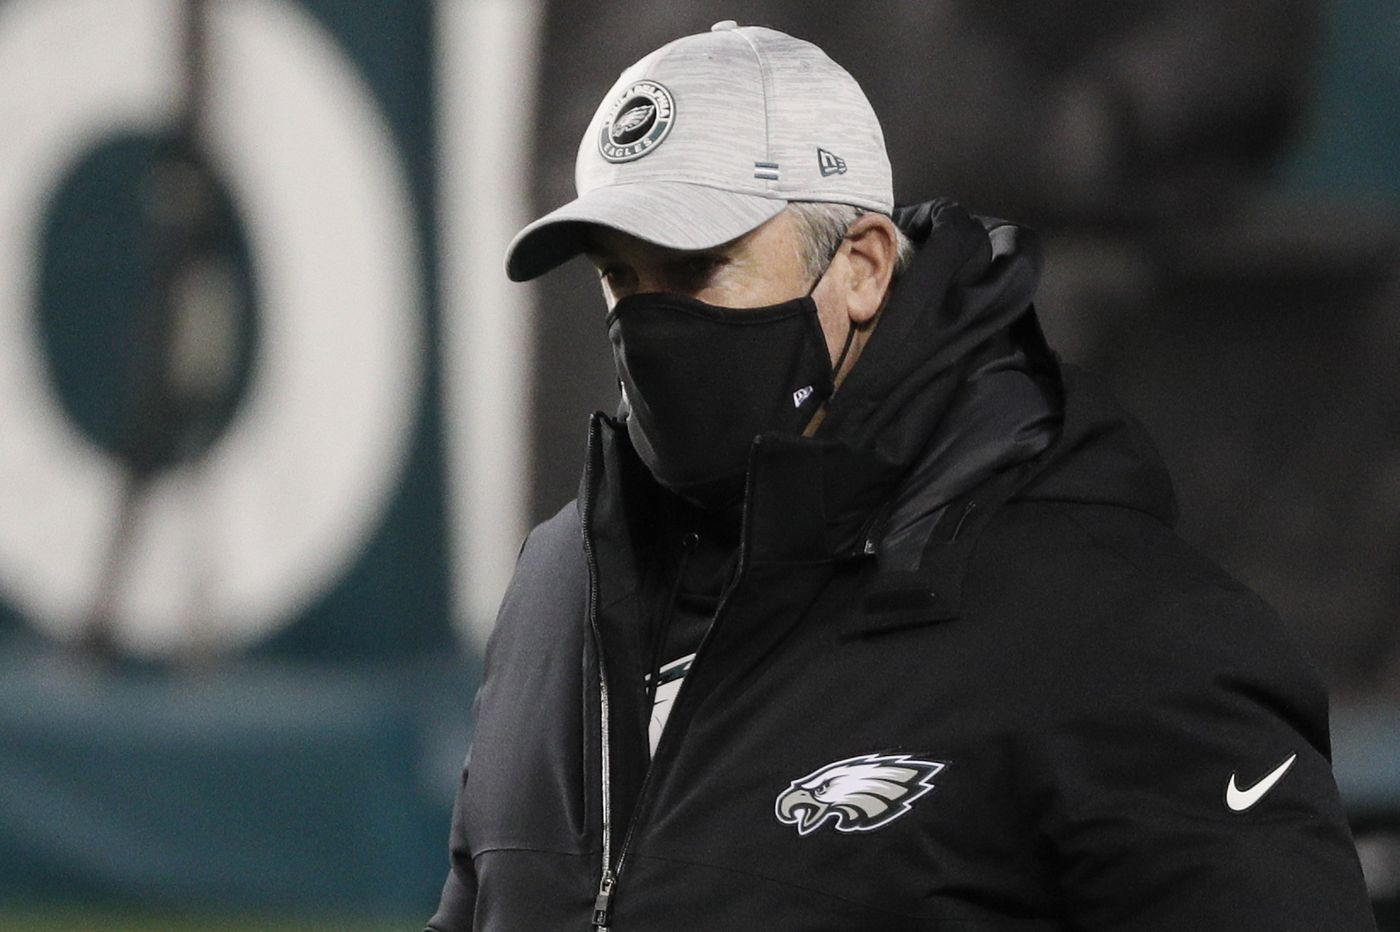 Doug Pederson insists the Eagles played to win in loss vs. Washington